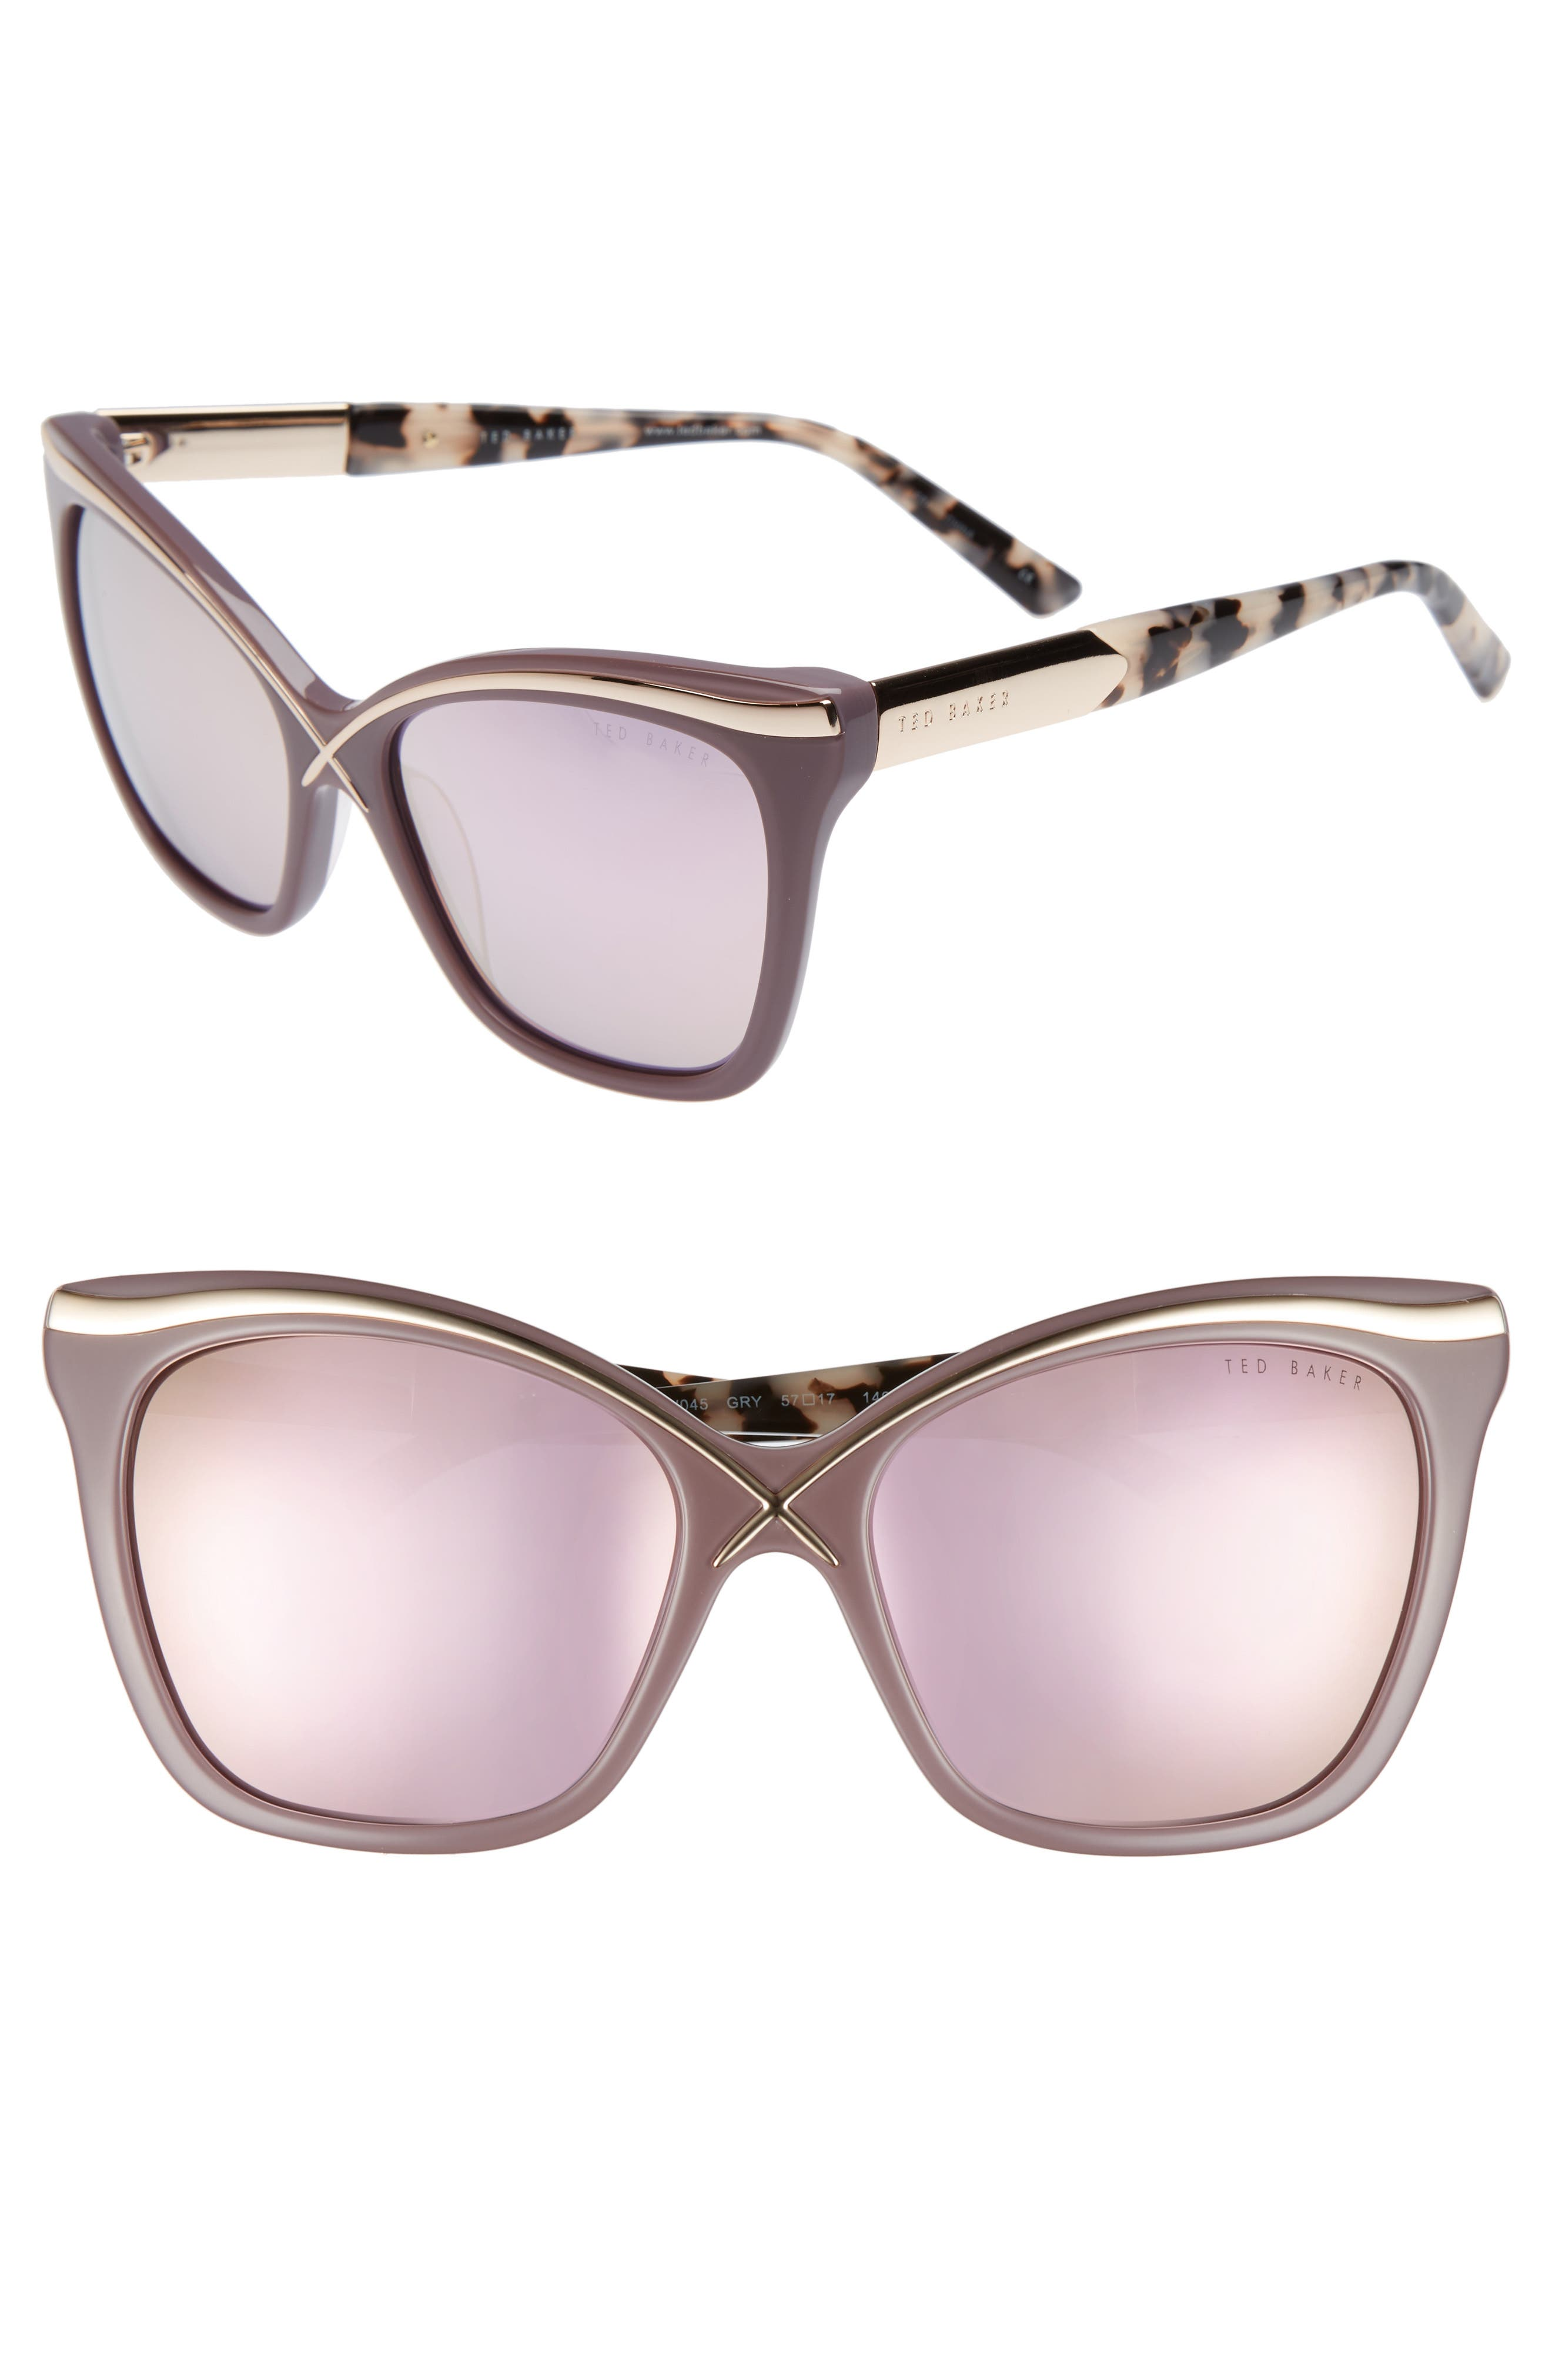 57mm Square Cat Eye Sunglasses,                         Main,                         color, Grey